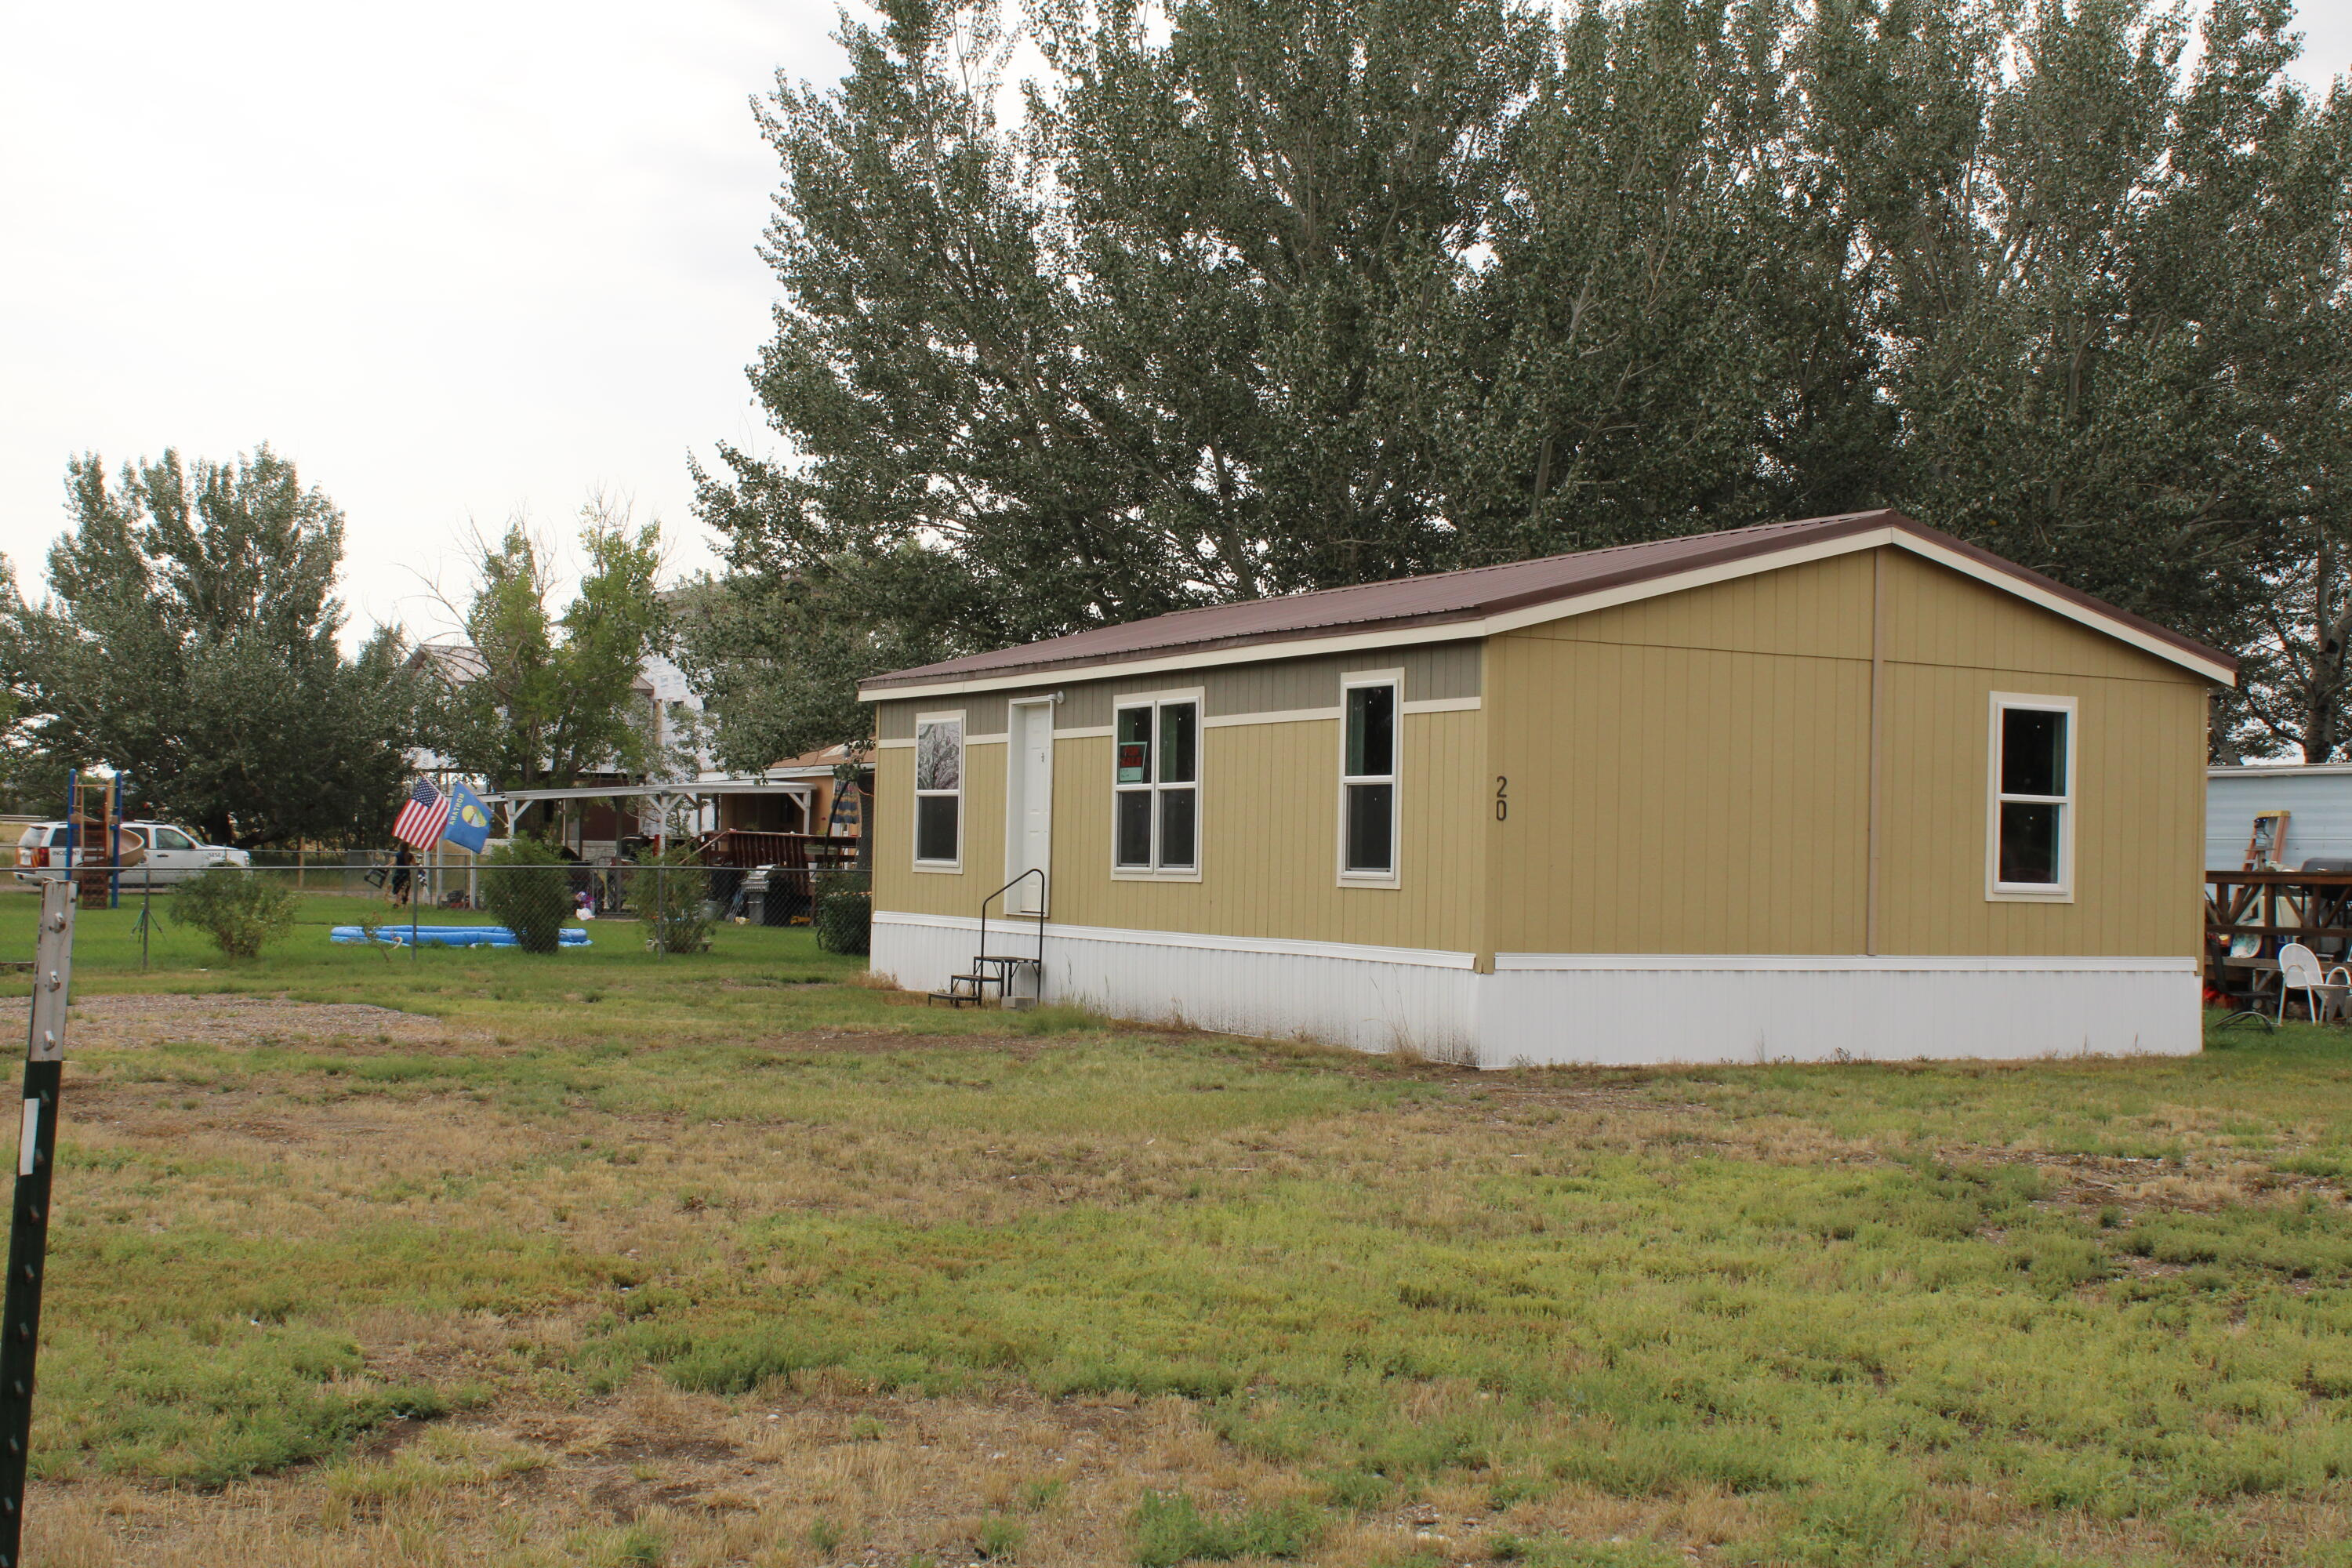 This 2015, Double Wide, 3 bed, 2 bath Mobile home is located on a huge lot in Vaughn, Only 12 miles from Great Falls. Interstate Highway the whole way! It is located in the Beautiful Red Sky Community mobile home park. Park has been under new management with an onsite manager. Beautiful Rural setting with mature trees.Vaughn has a grocery stores, Restaurant/bars, and the school is within walking distance.Buyer must be accepted unto the park.Home must stay in the park for 24 mos after Closing. Lot Rent is: $595/mo.Fences and 2 non aggressive breed dogs are allowed.